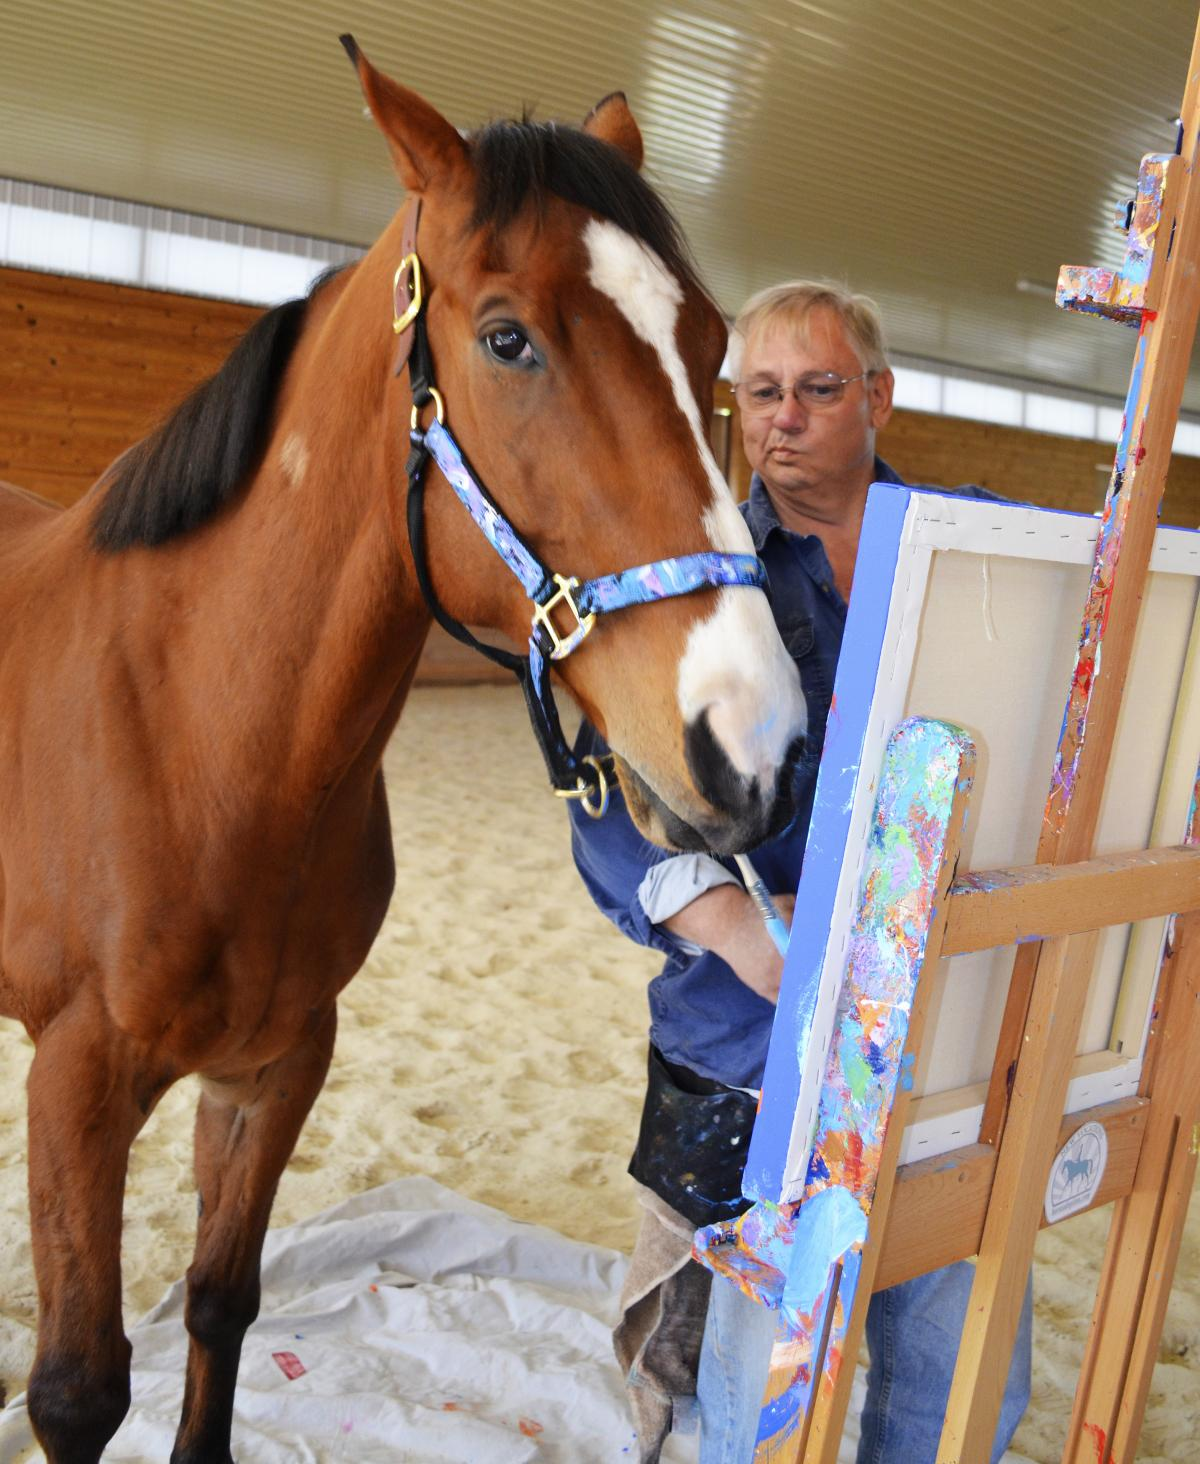 Metro wields a paintbrush as owner Ron Krajewski looks on at Motters Station Stables in Rocky Ridge, Md.